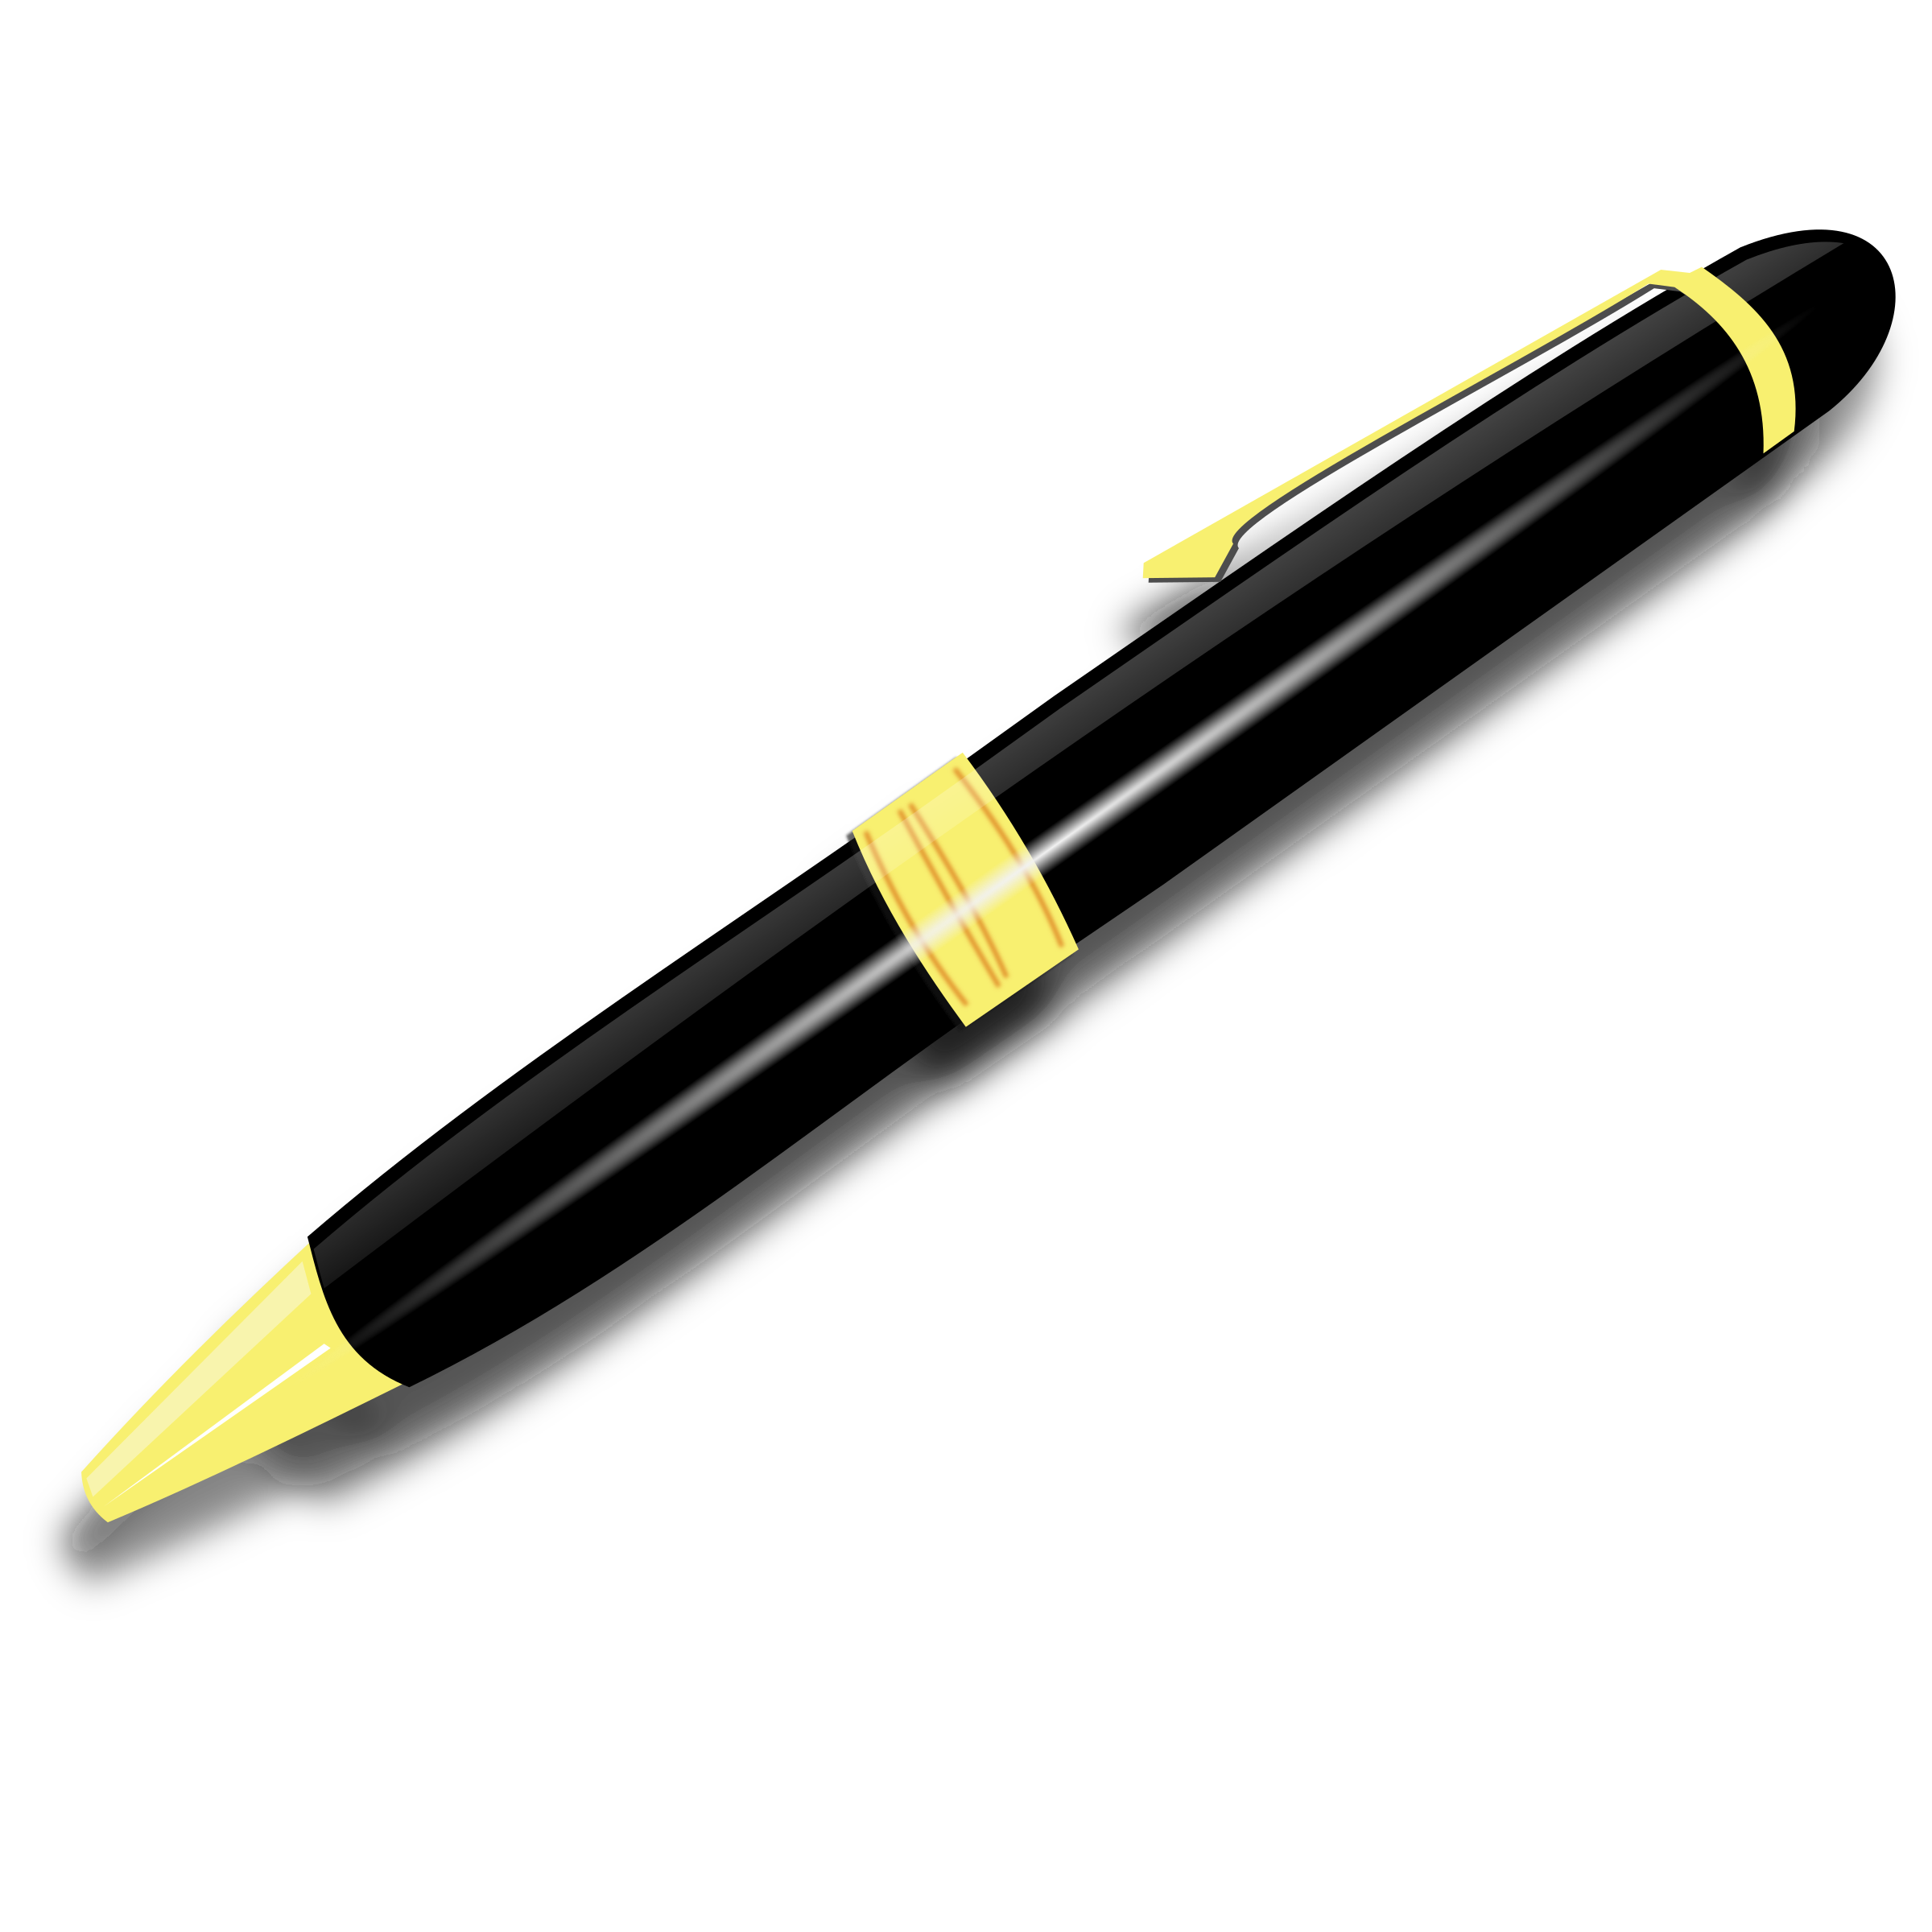 Pen PNG Transparent Free Images | PNG Only